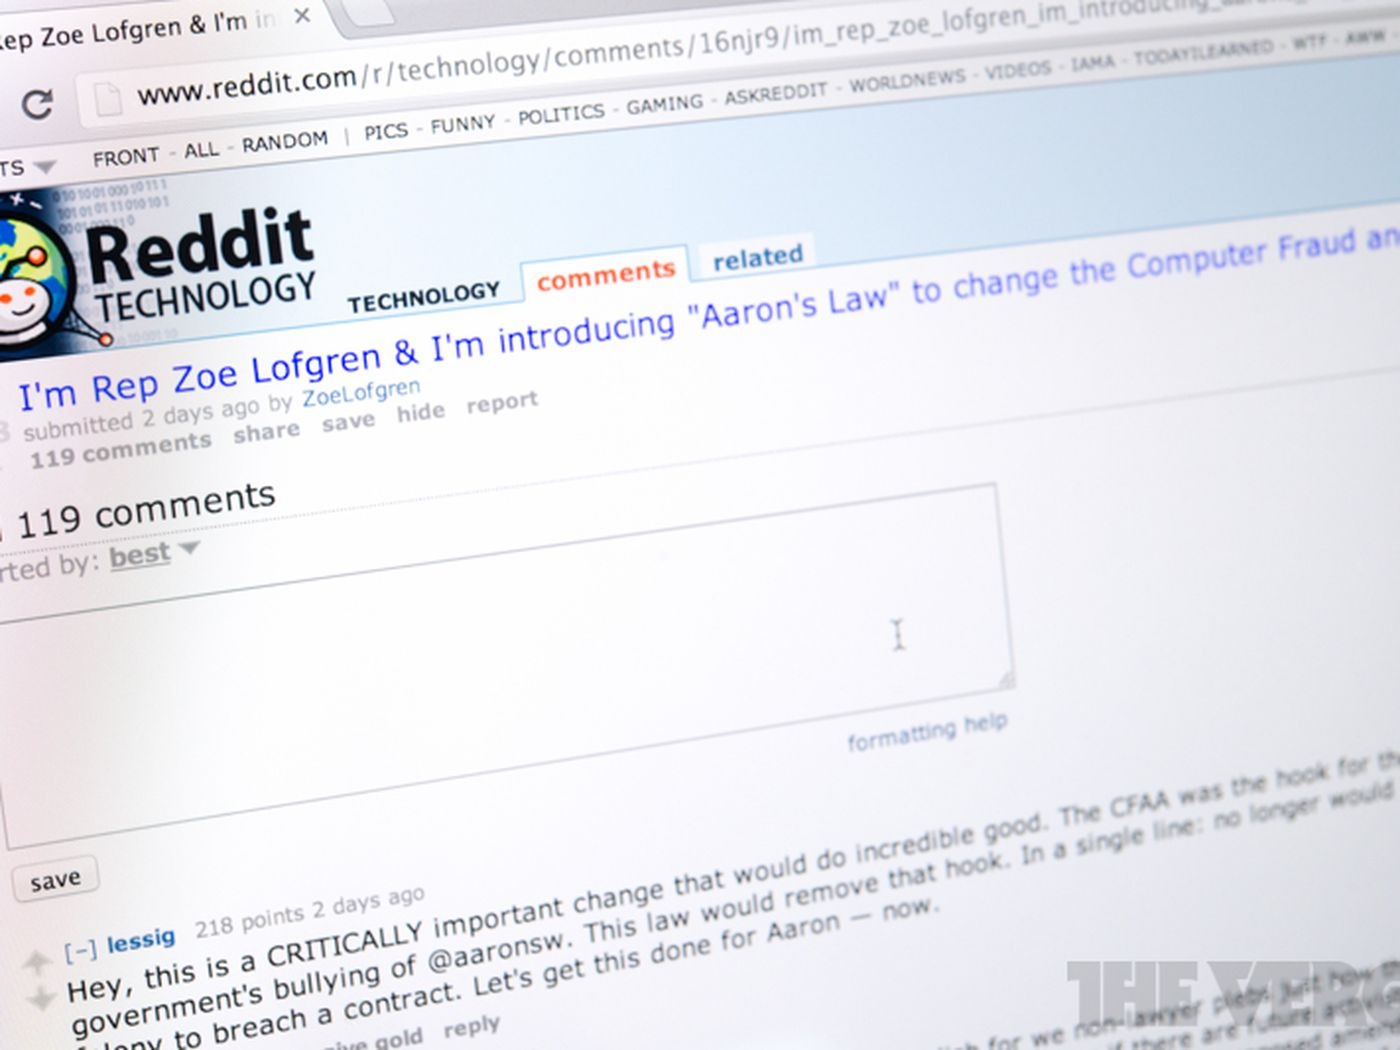 Reddit is moving to total encryption - The Verge